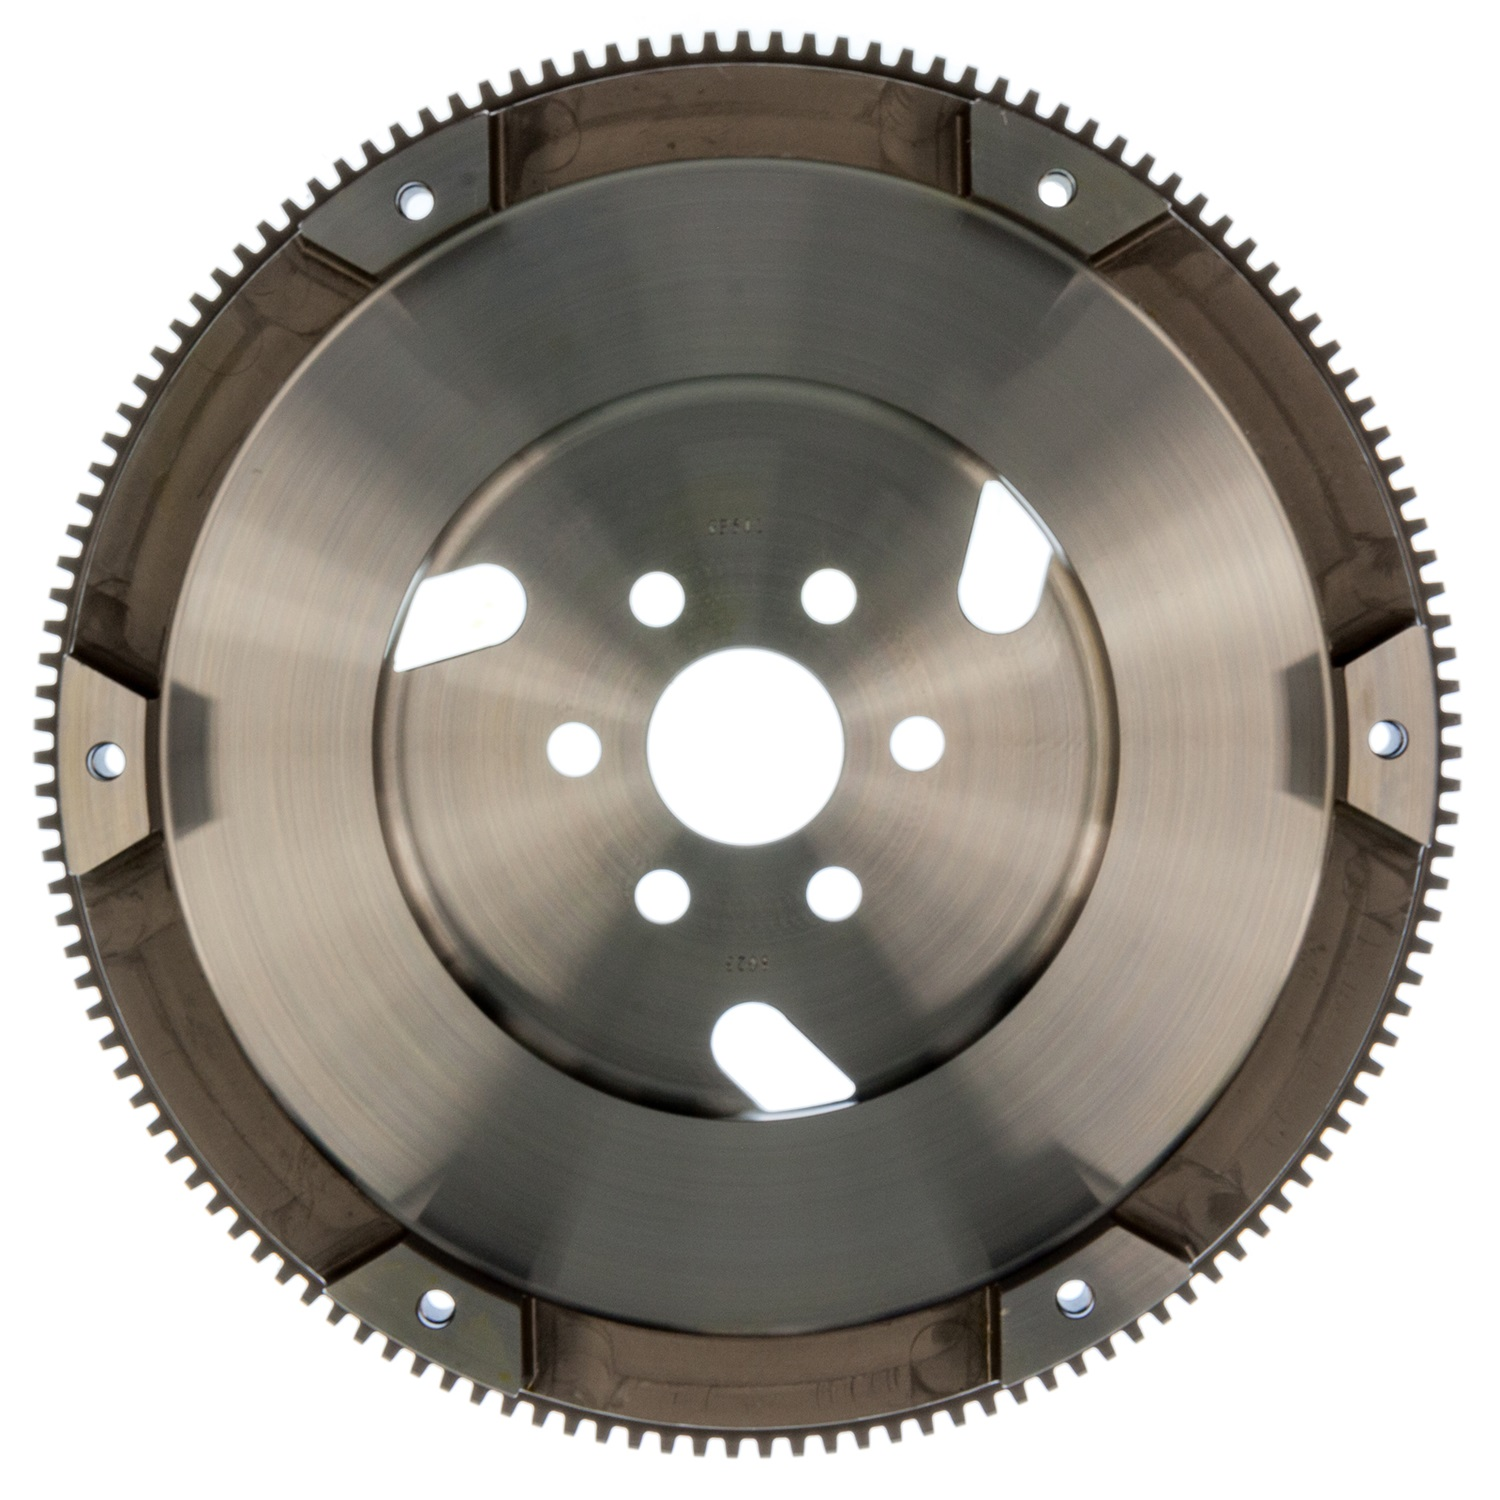 Exedy Racing Clutch GF501 Lightweight Racing Flywheel Fits 05-10 Cobalt G5 HHR